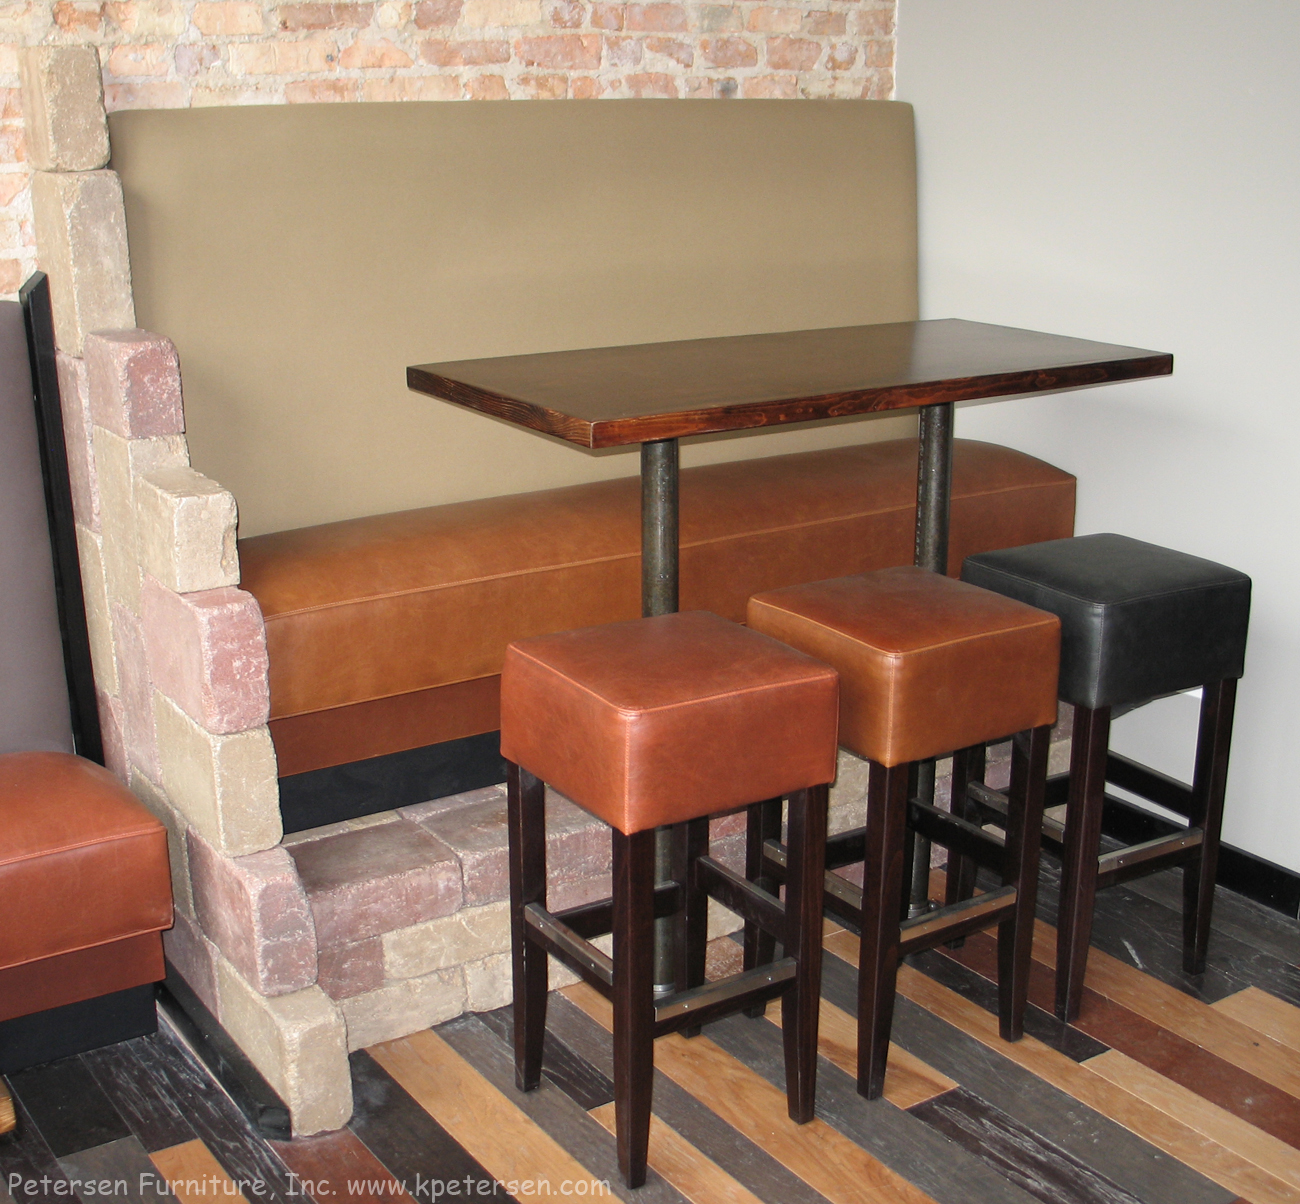 Restaurant Booth Bar Height Platform